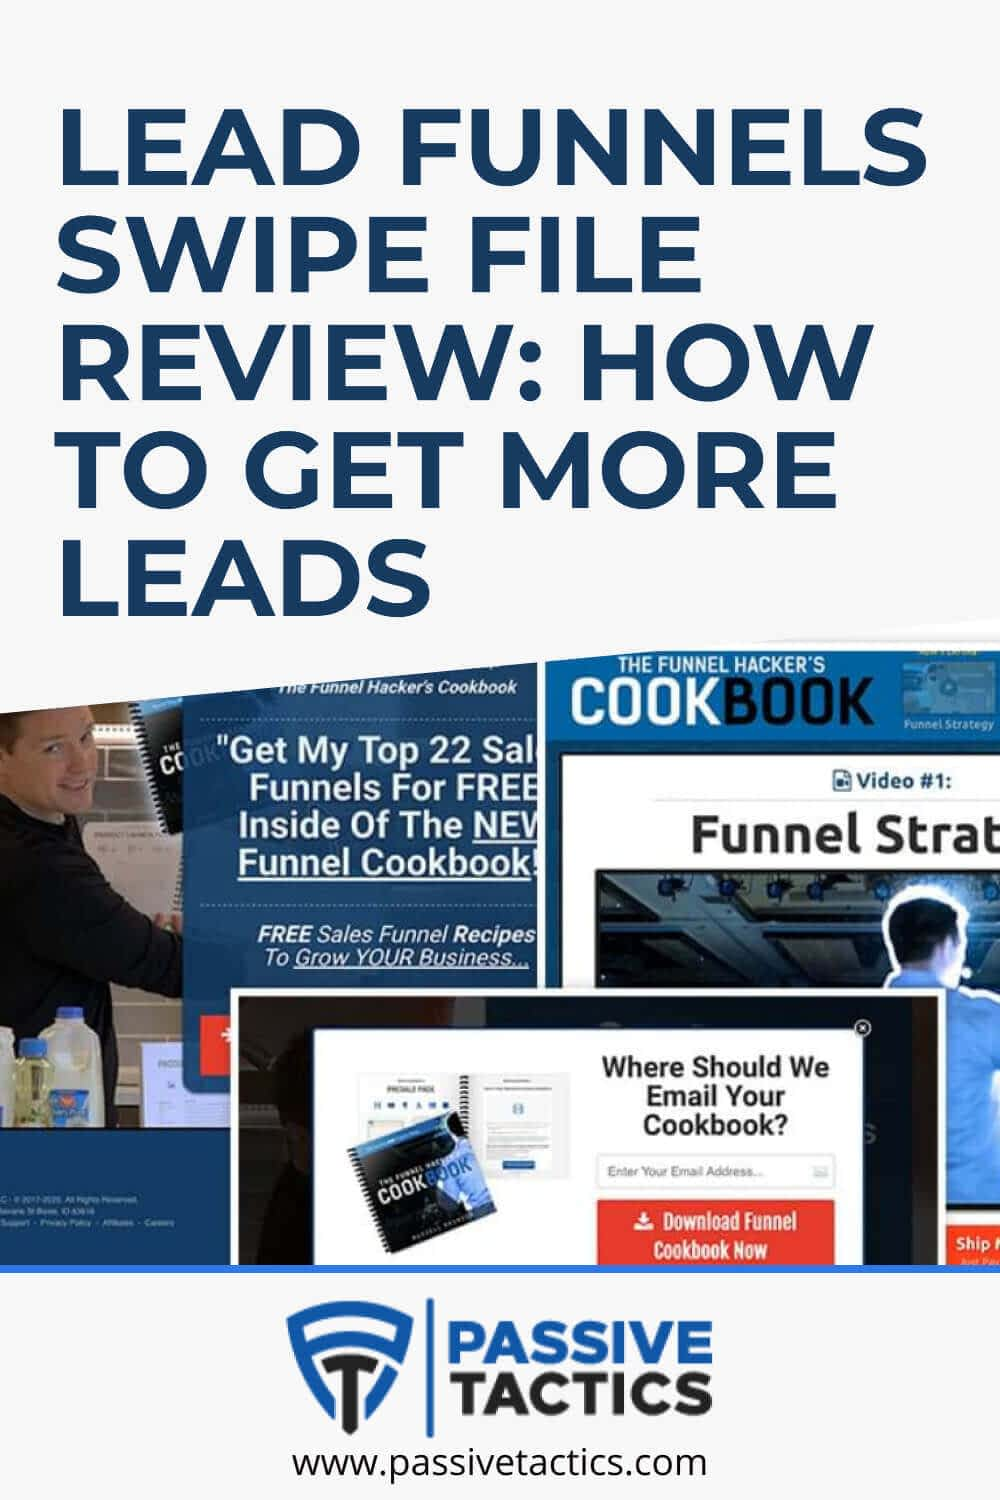 Lead Funnels Swipe File Review: How To Get More Leads